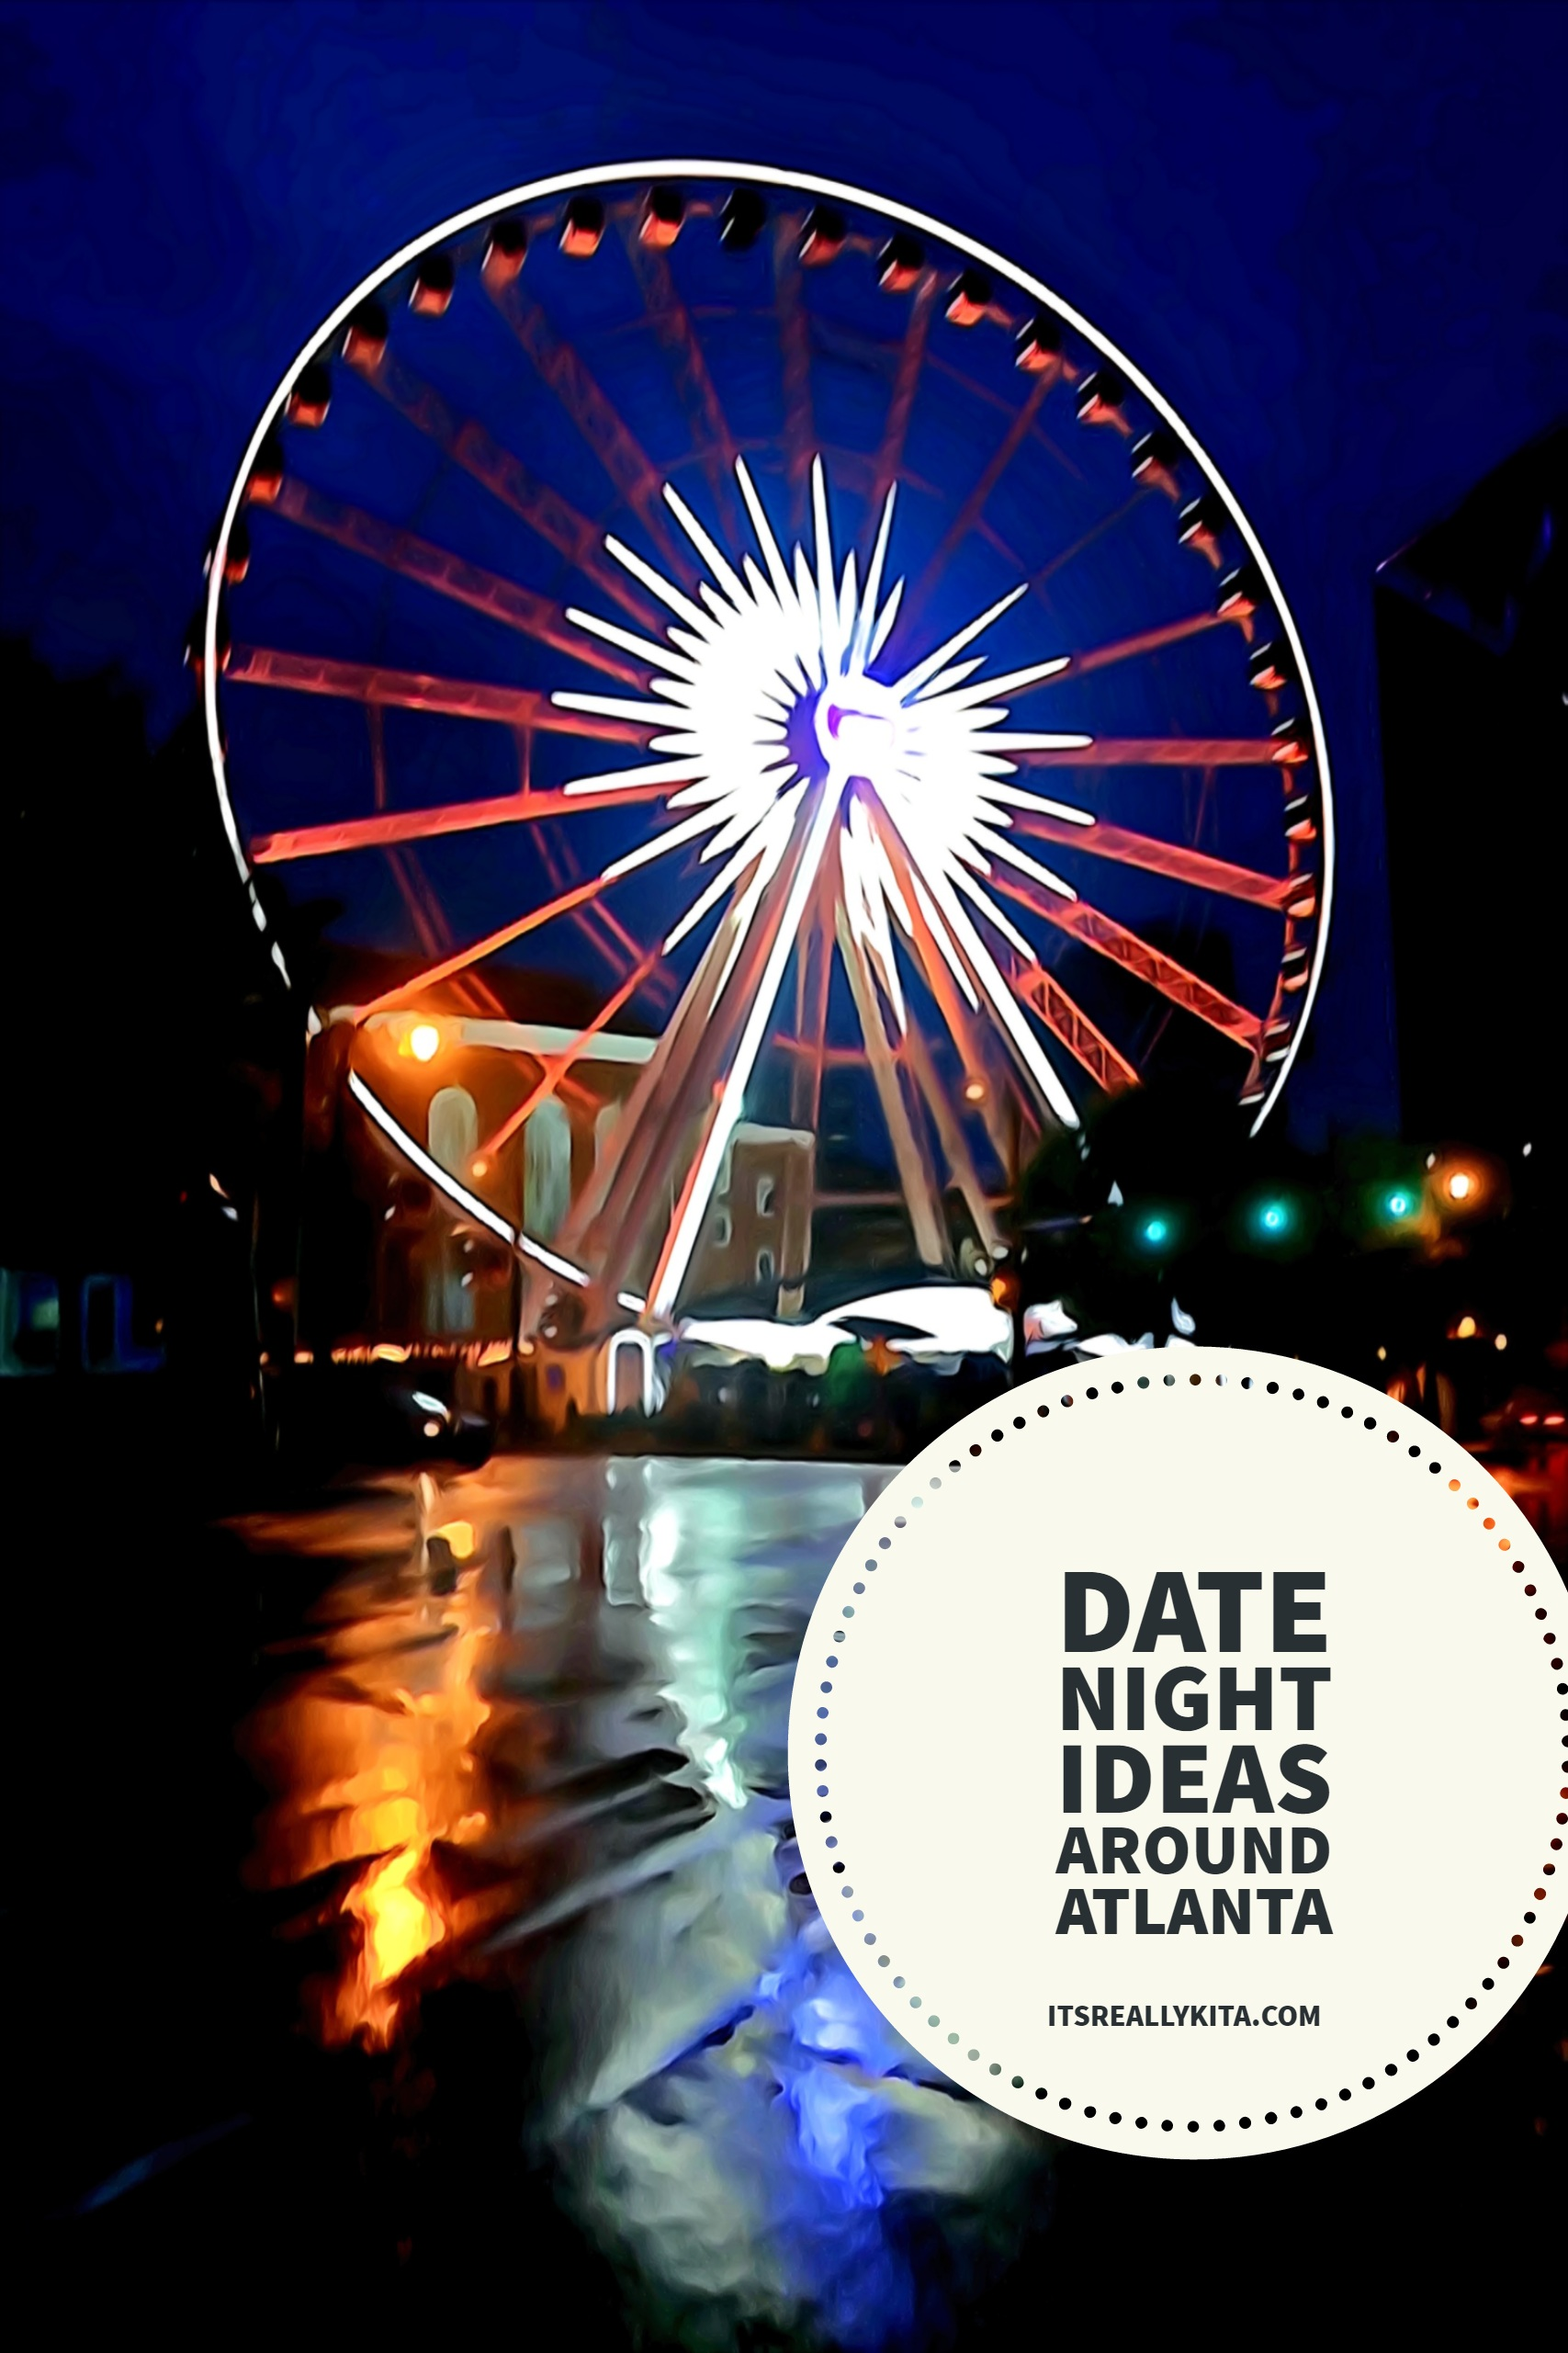 date night ideas around atlanta - it's really kita